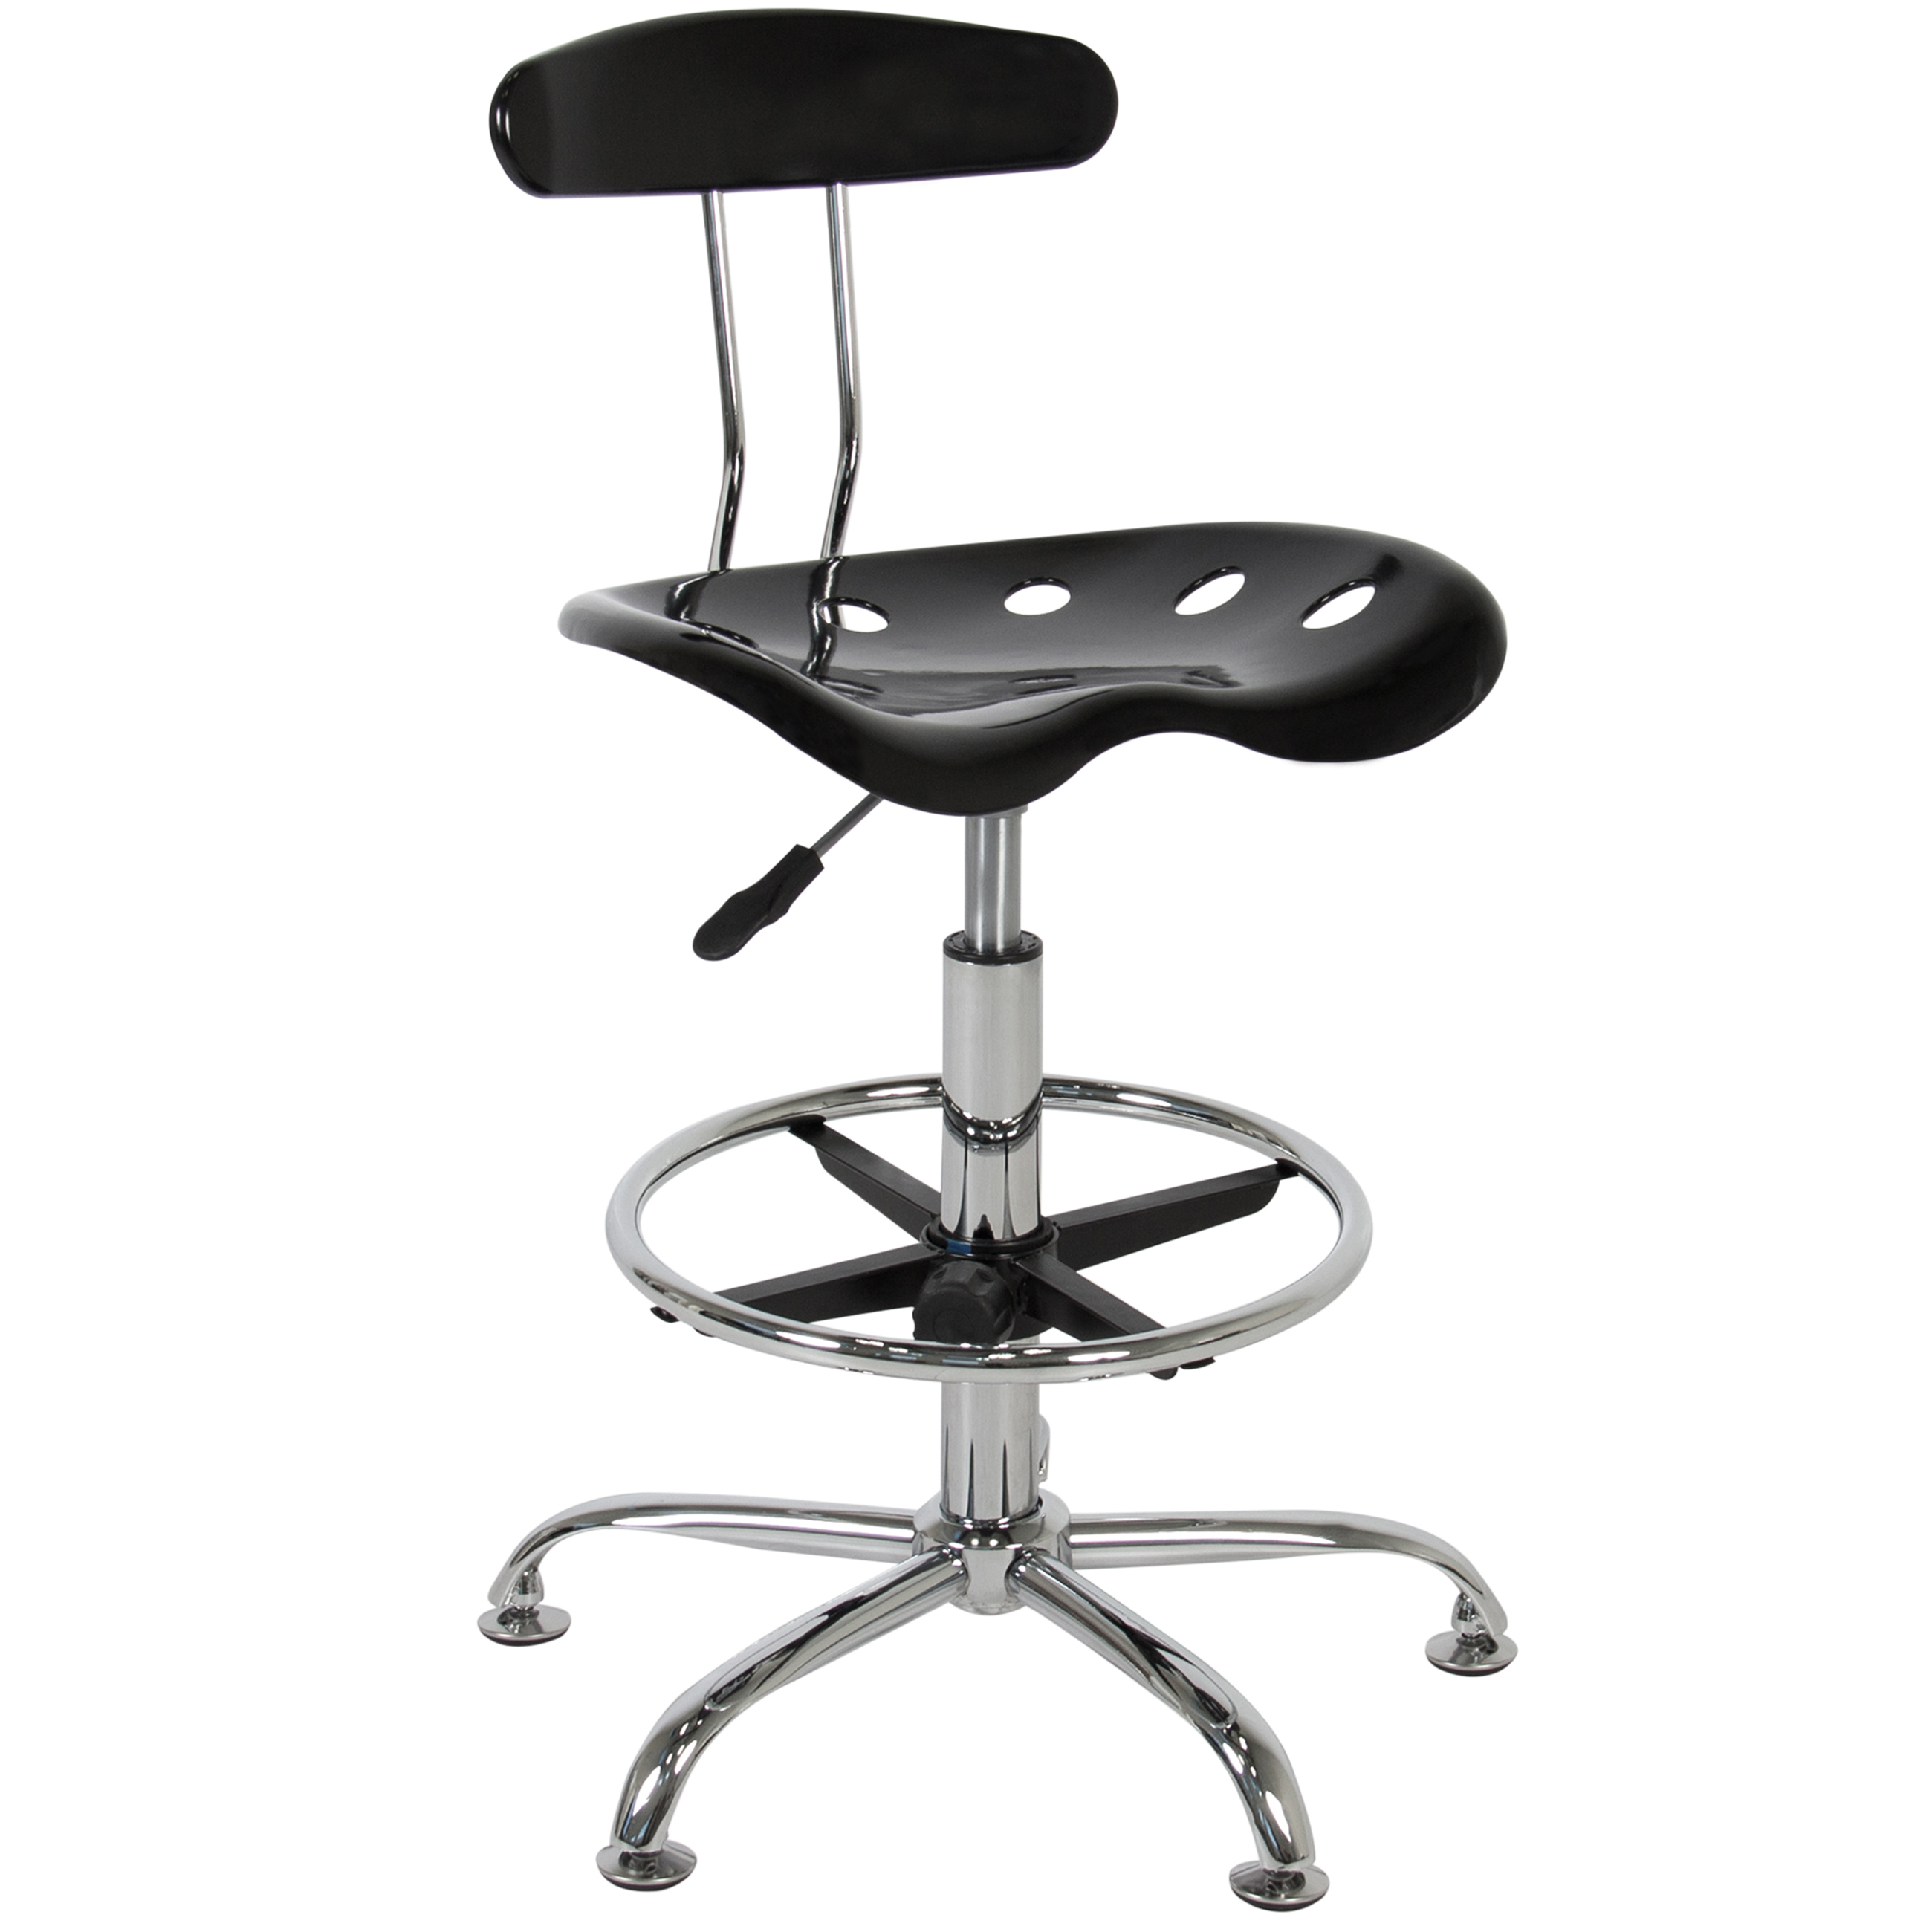 stool chair adjustable cheap accent chairs under 50 best choice products abs tractor seat bar stools swivel chrome drafting modern walmart com